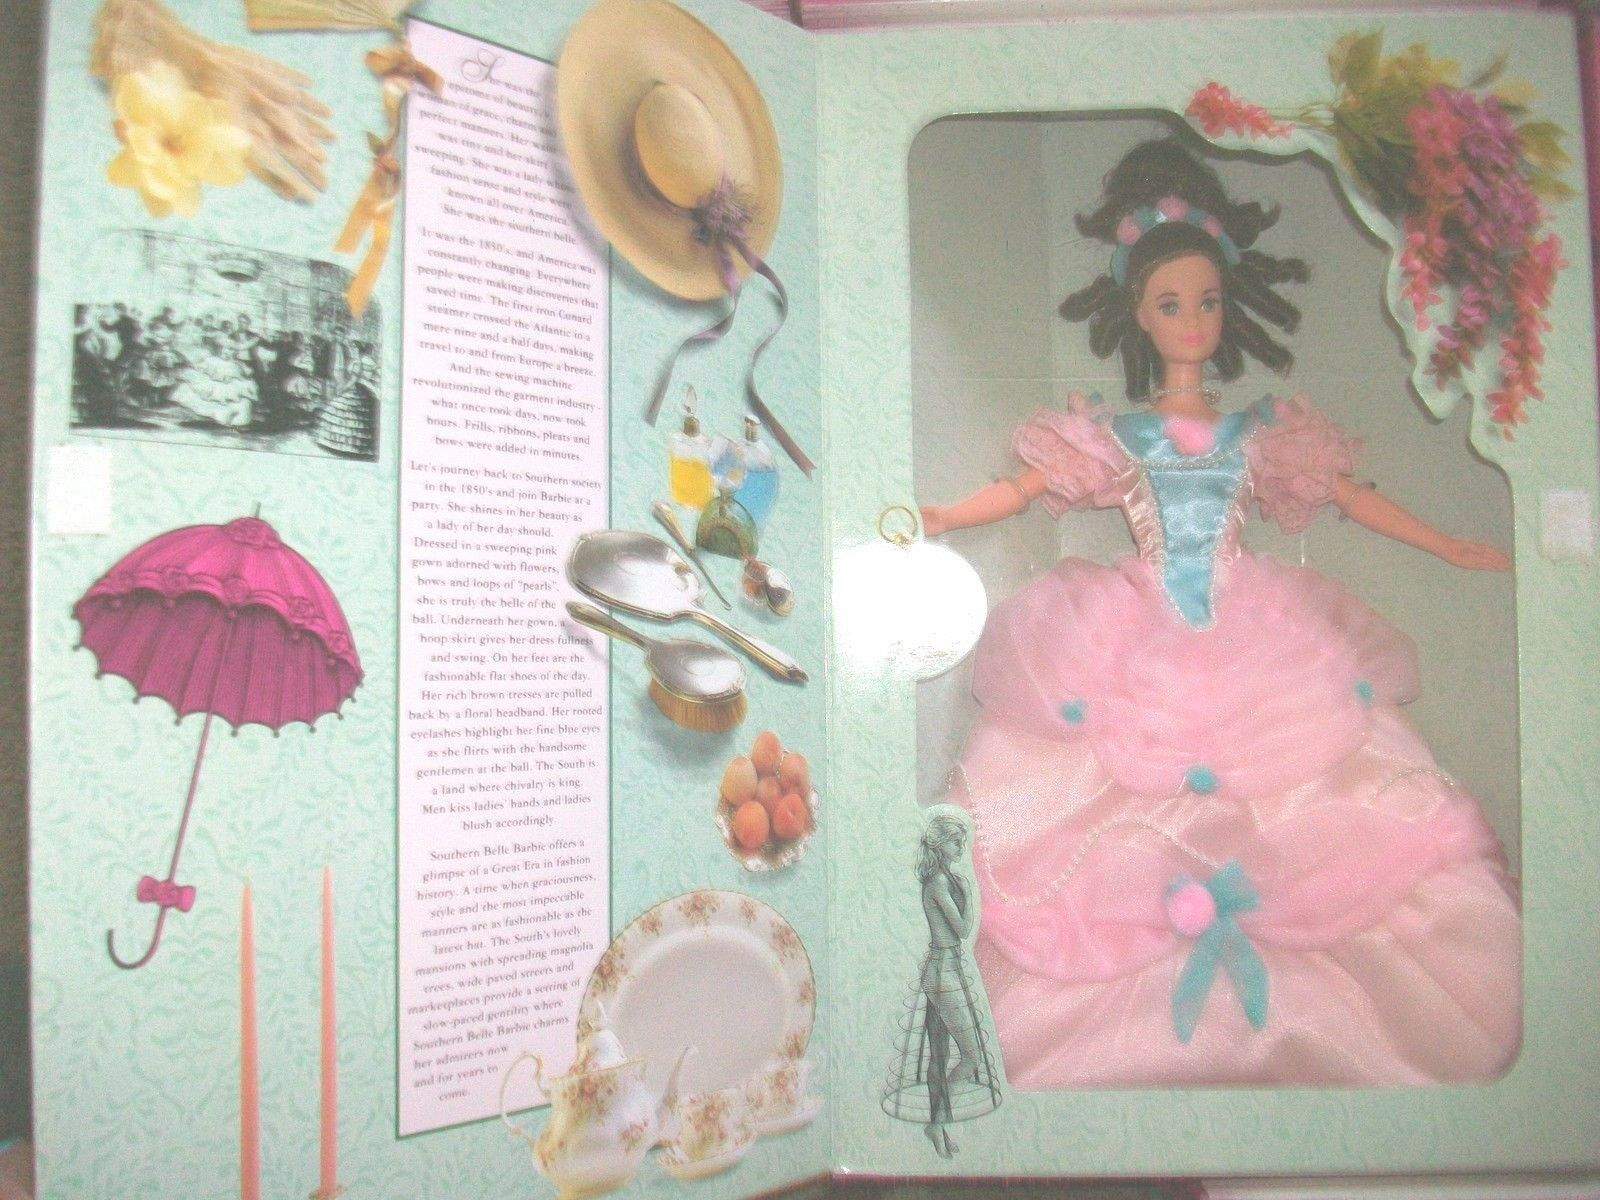 1993 Great Ohren 564ms Südliche Belle Barbie